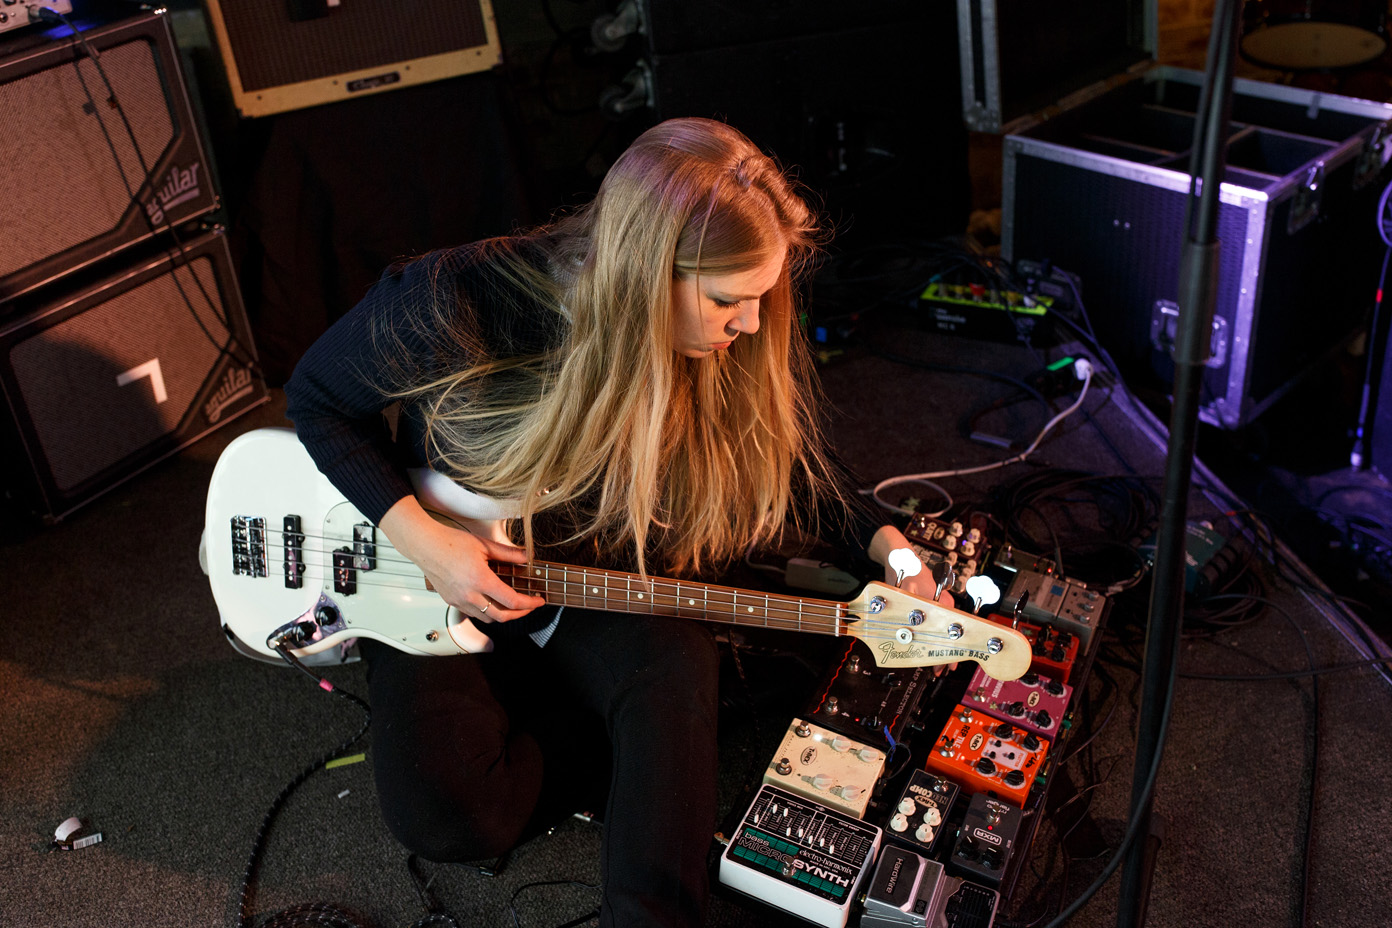 Signe setting up her pedals during soundcheck